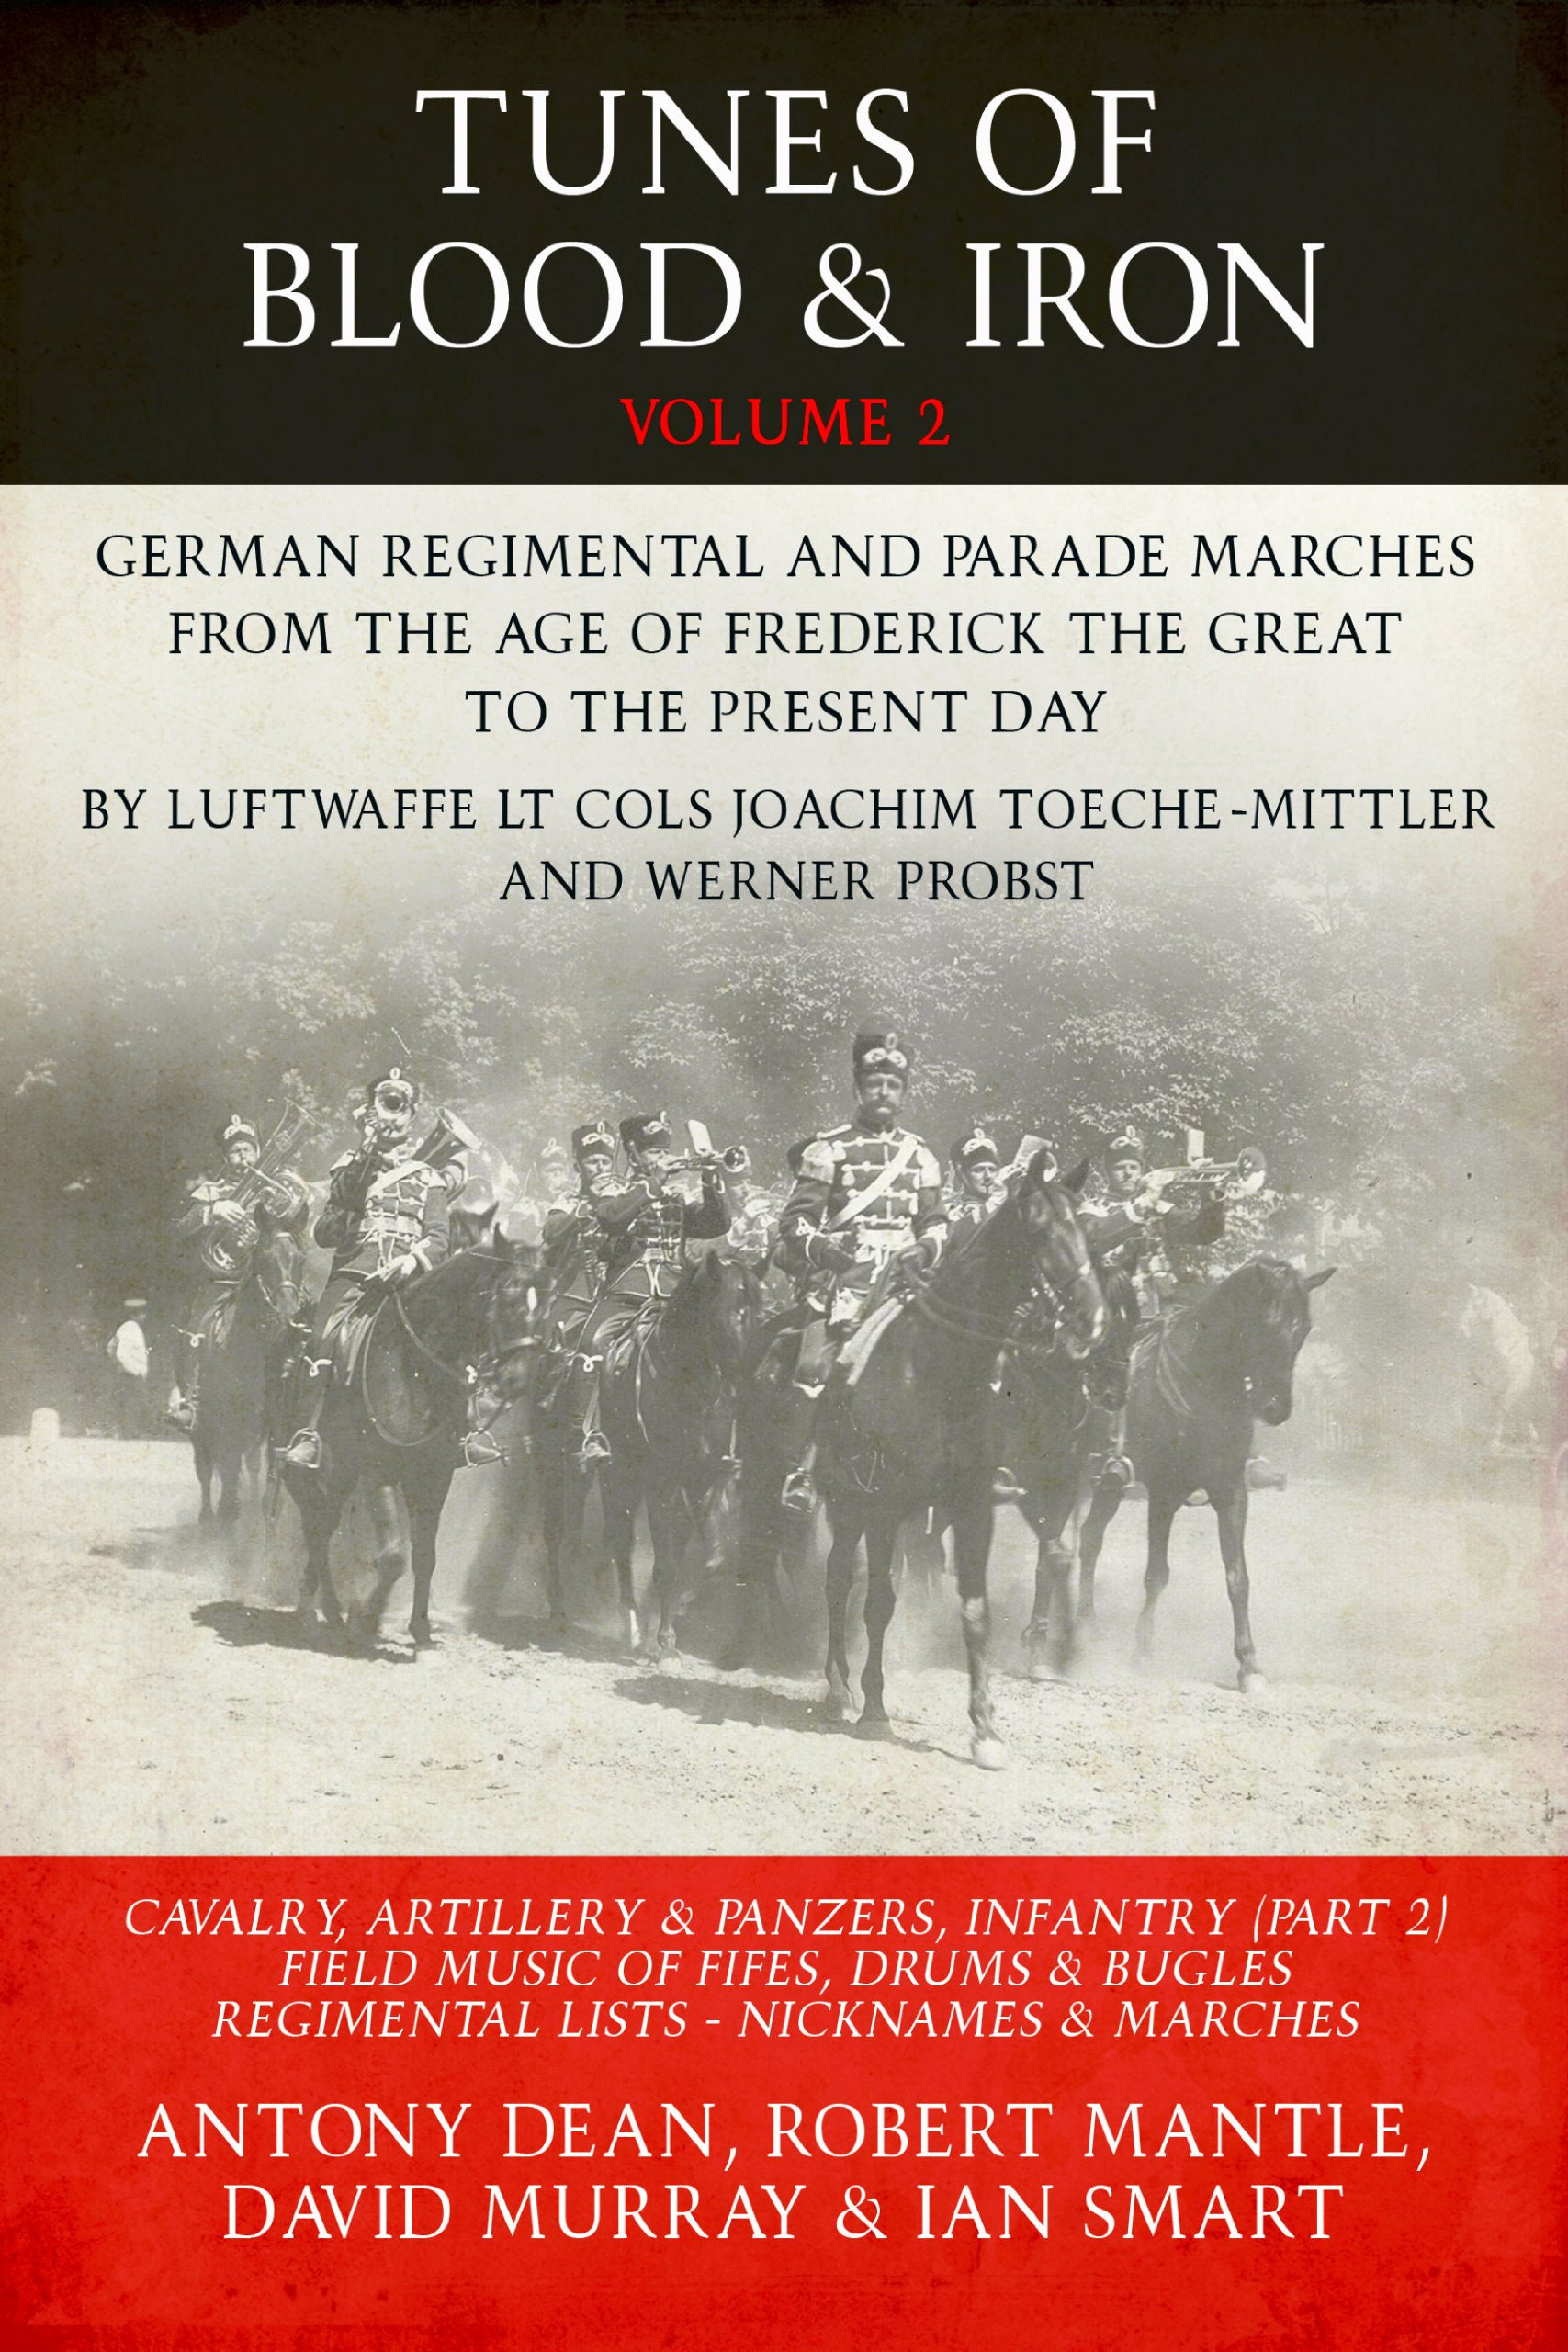 Tunes Of Blood And Iron  German Regimental And Parade Marches From Frederick The Great To The Present Day